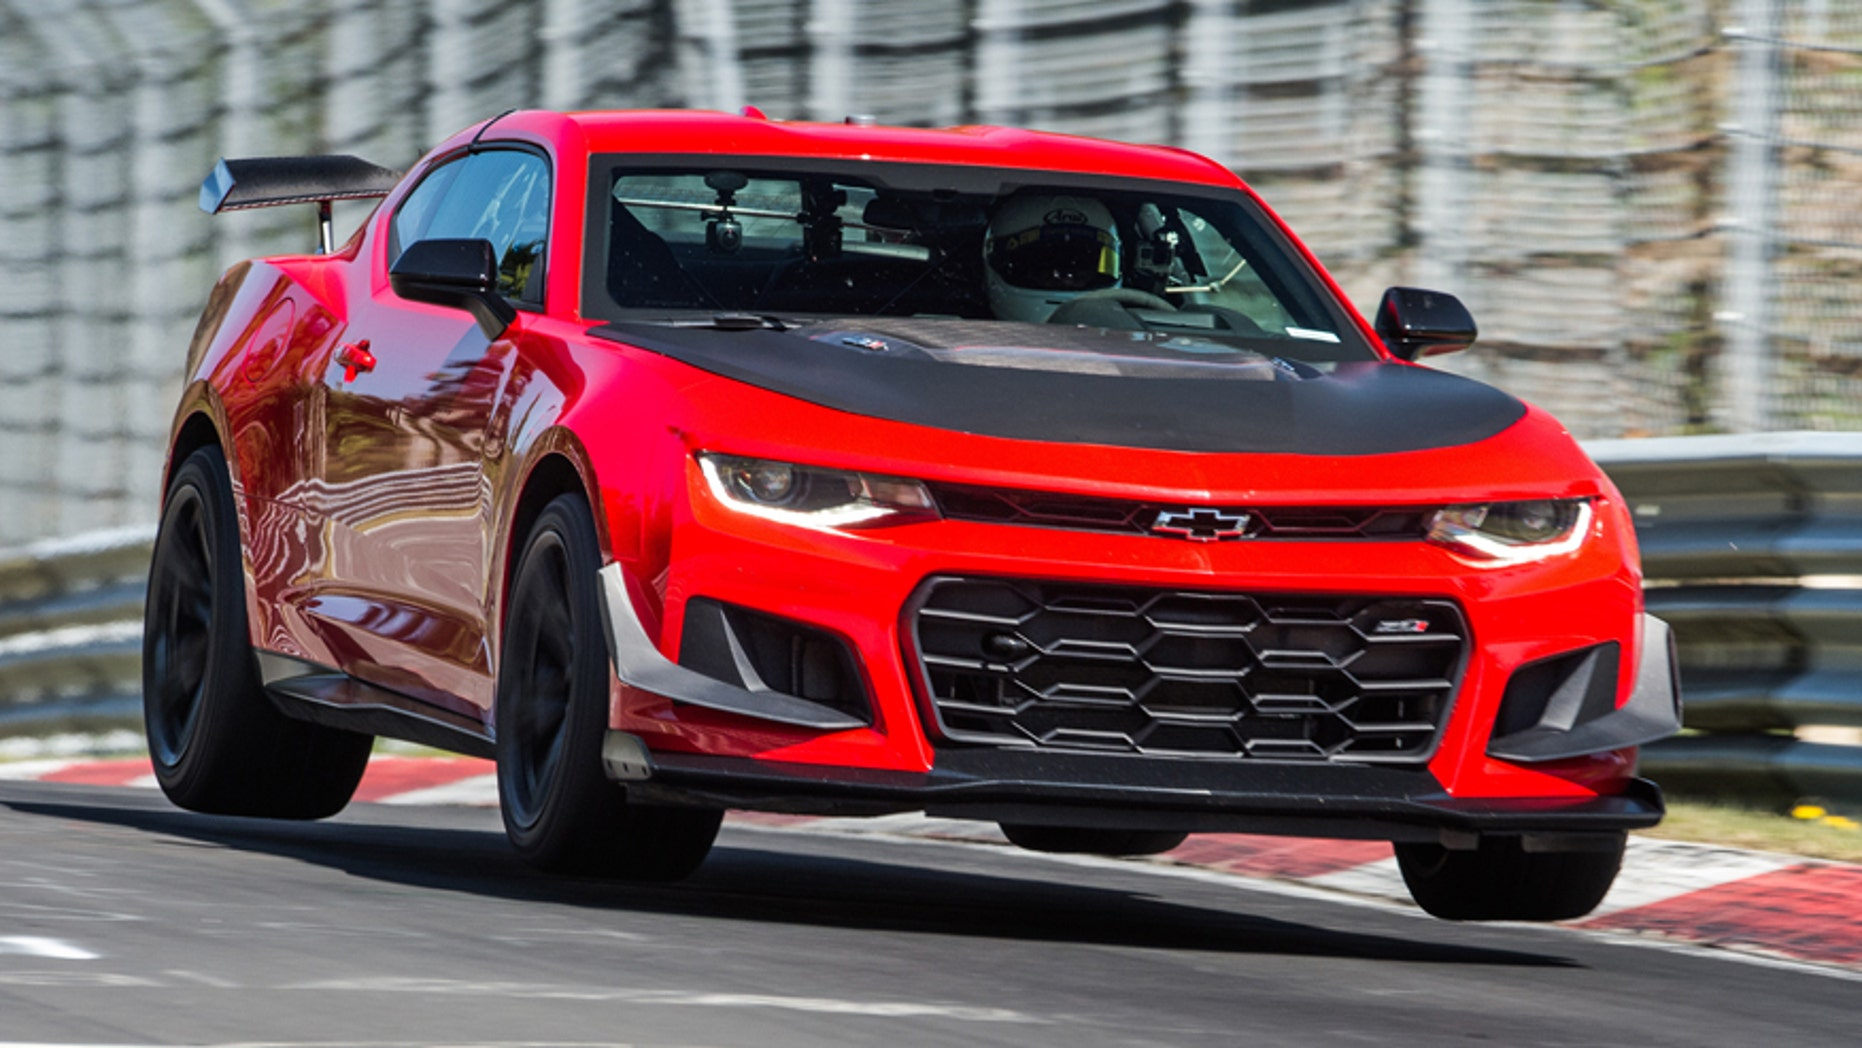 2018 Chevrolet Camaro Zl1 1le Is Faster Than Corvette